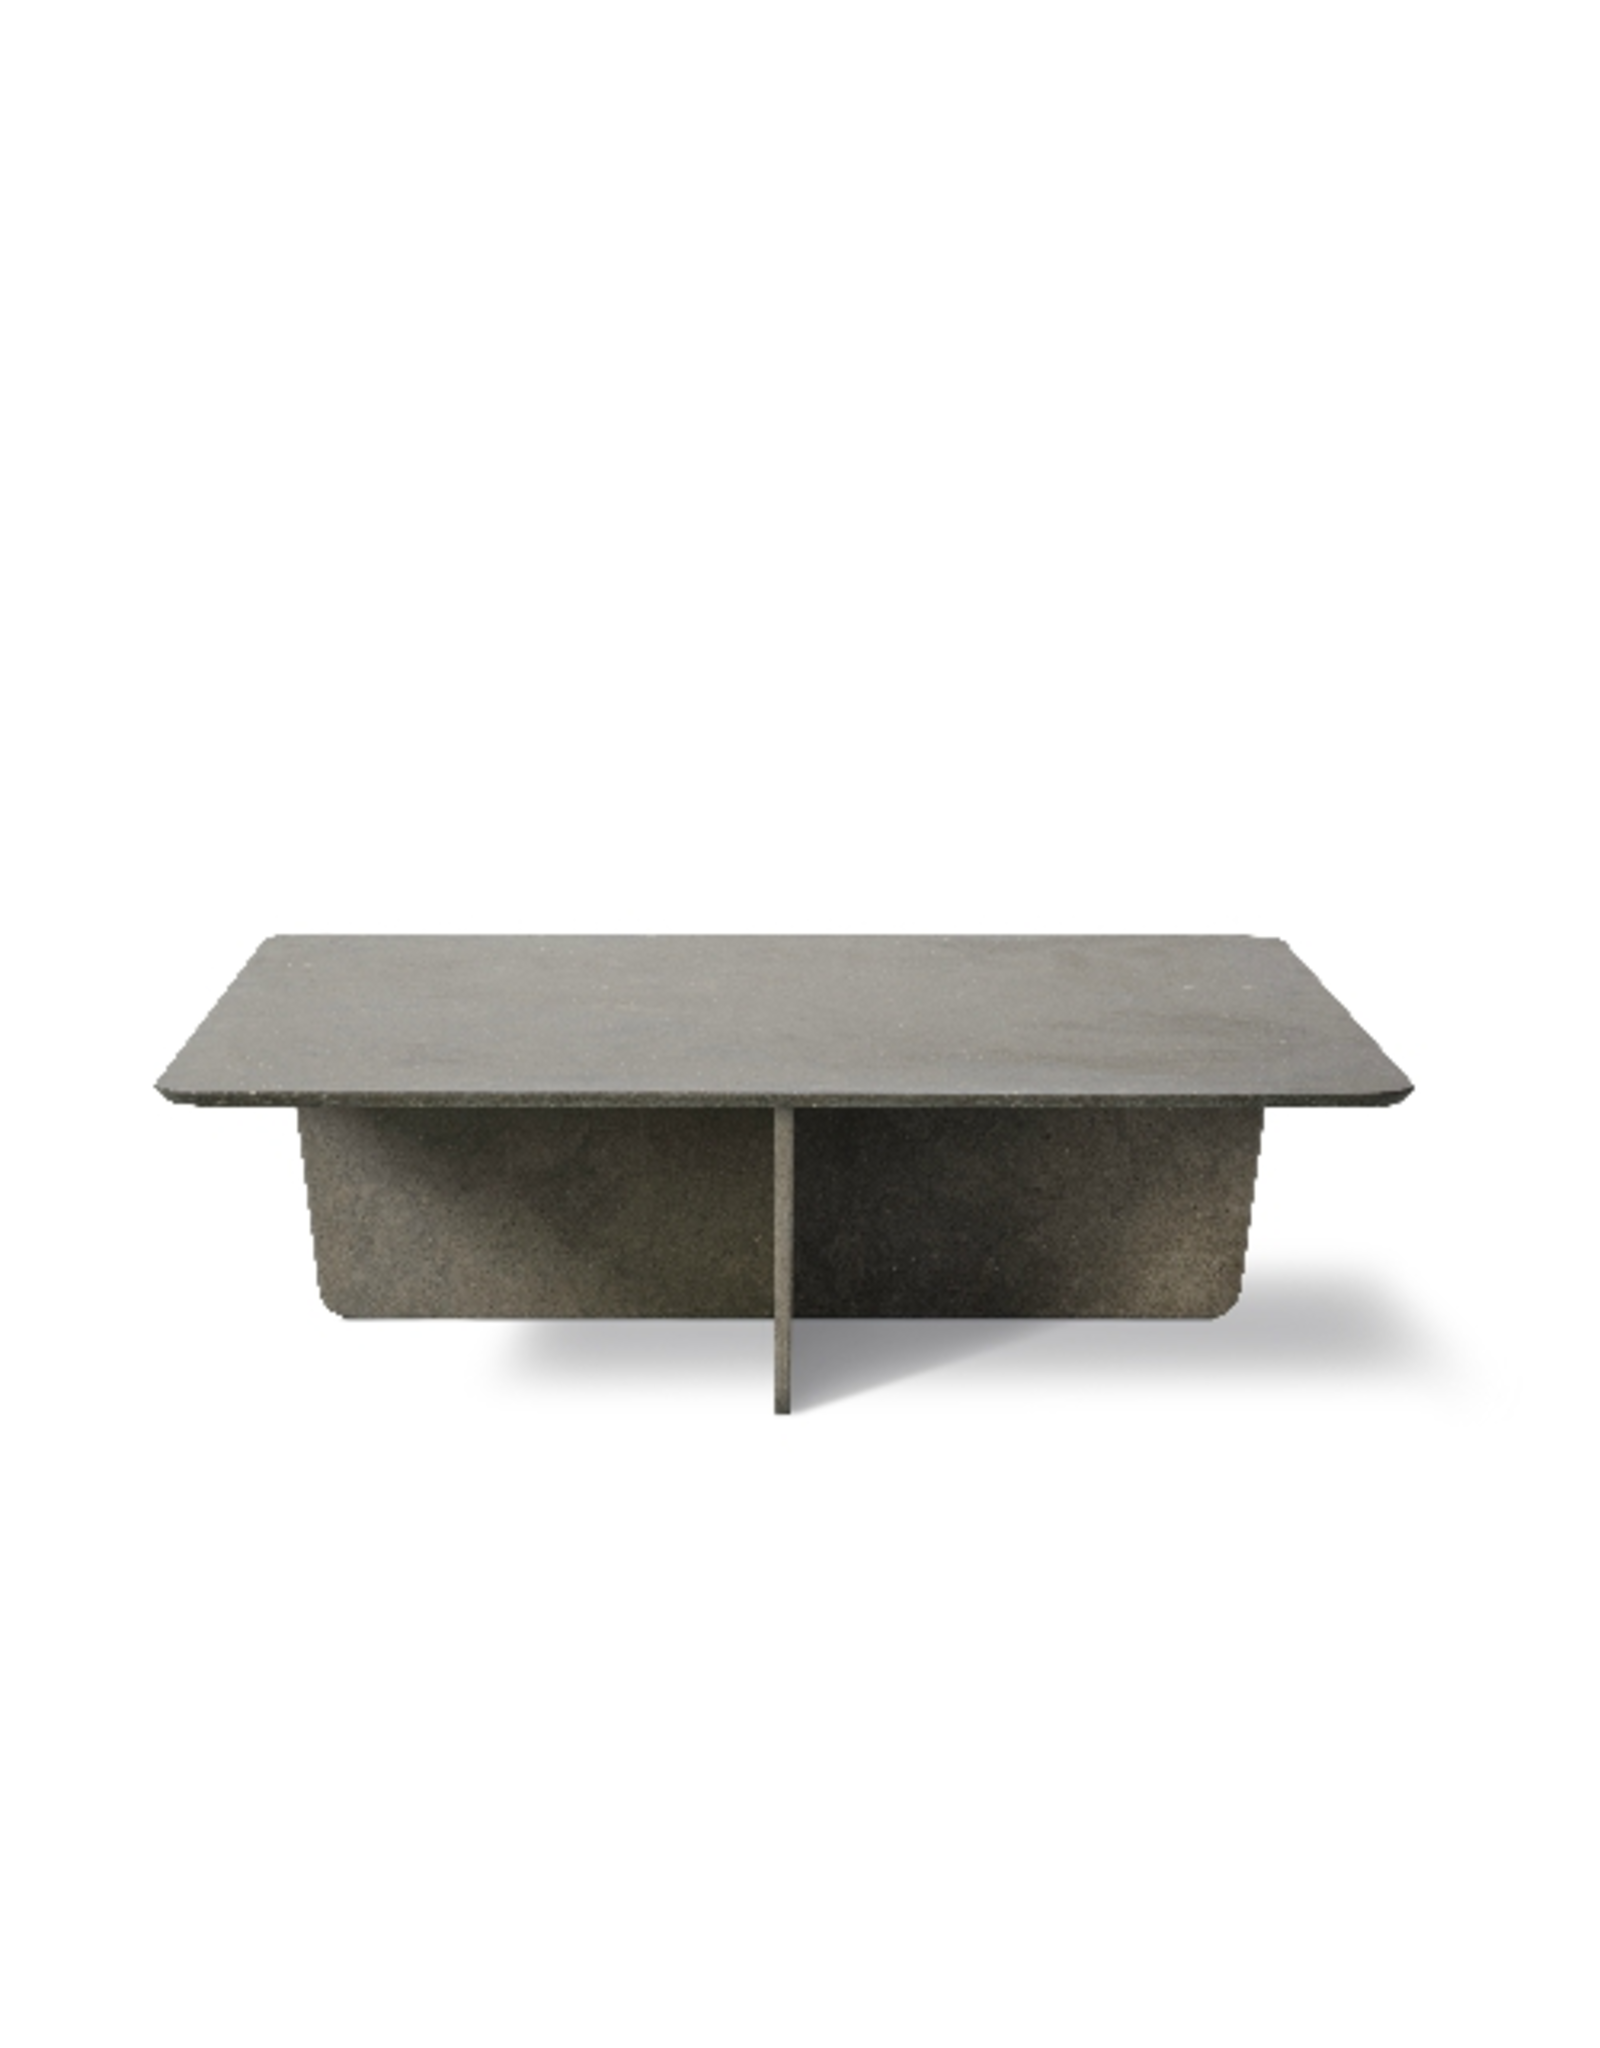 1965 TABLEAU SQUARE COFFEE TABLE